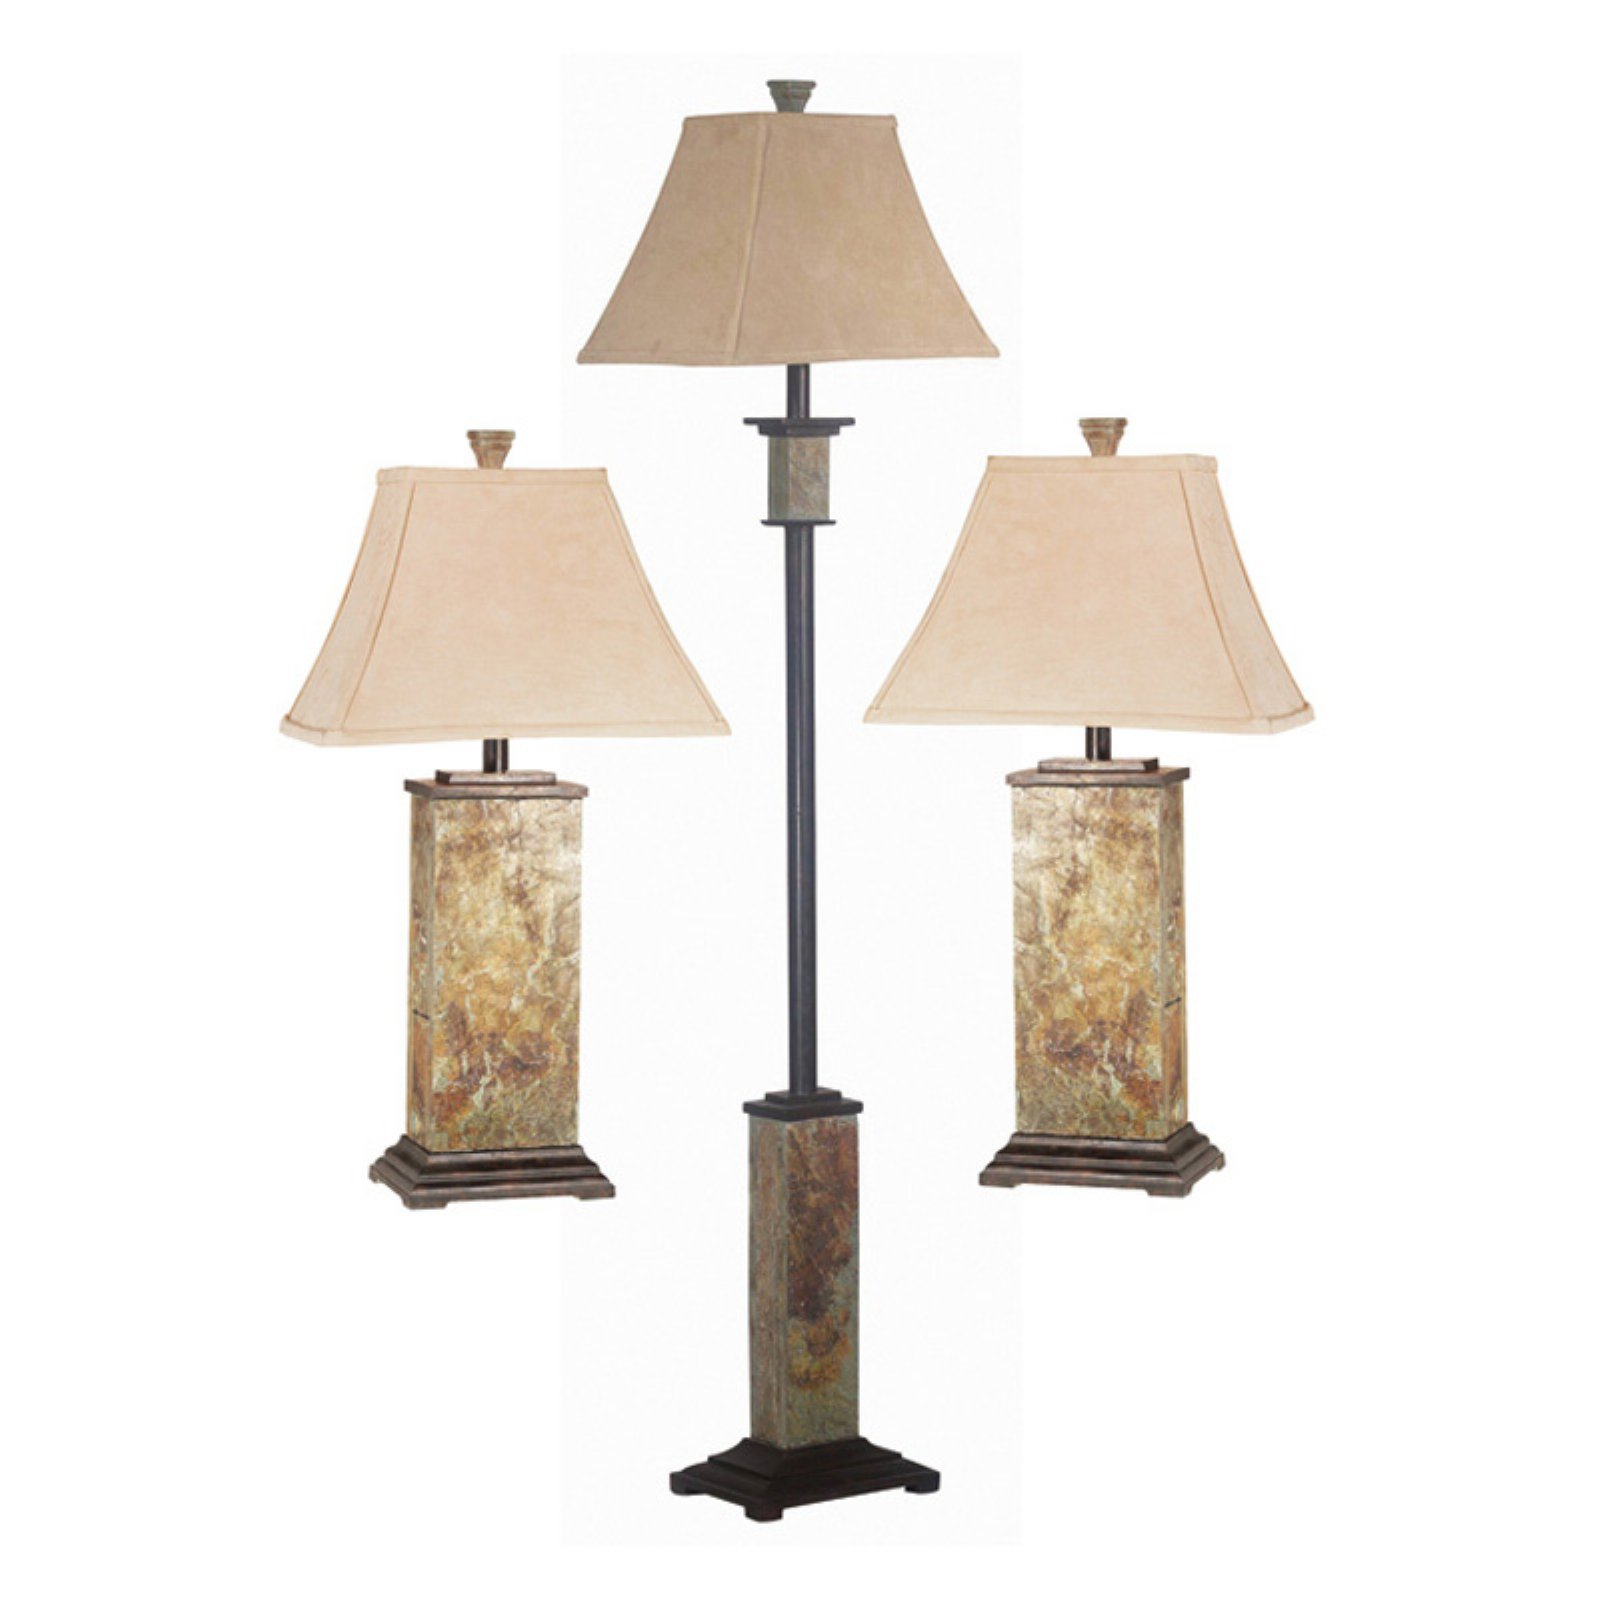 Kenroy Home 31207 Bennington 3 Pack Lamp Set (2 Table Lamps/1 Floor